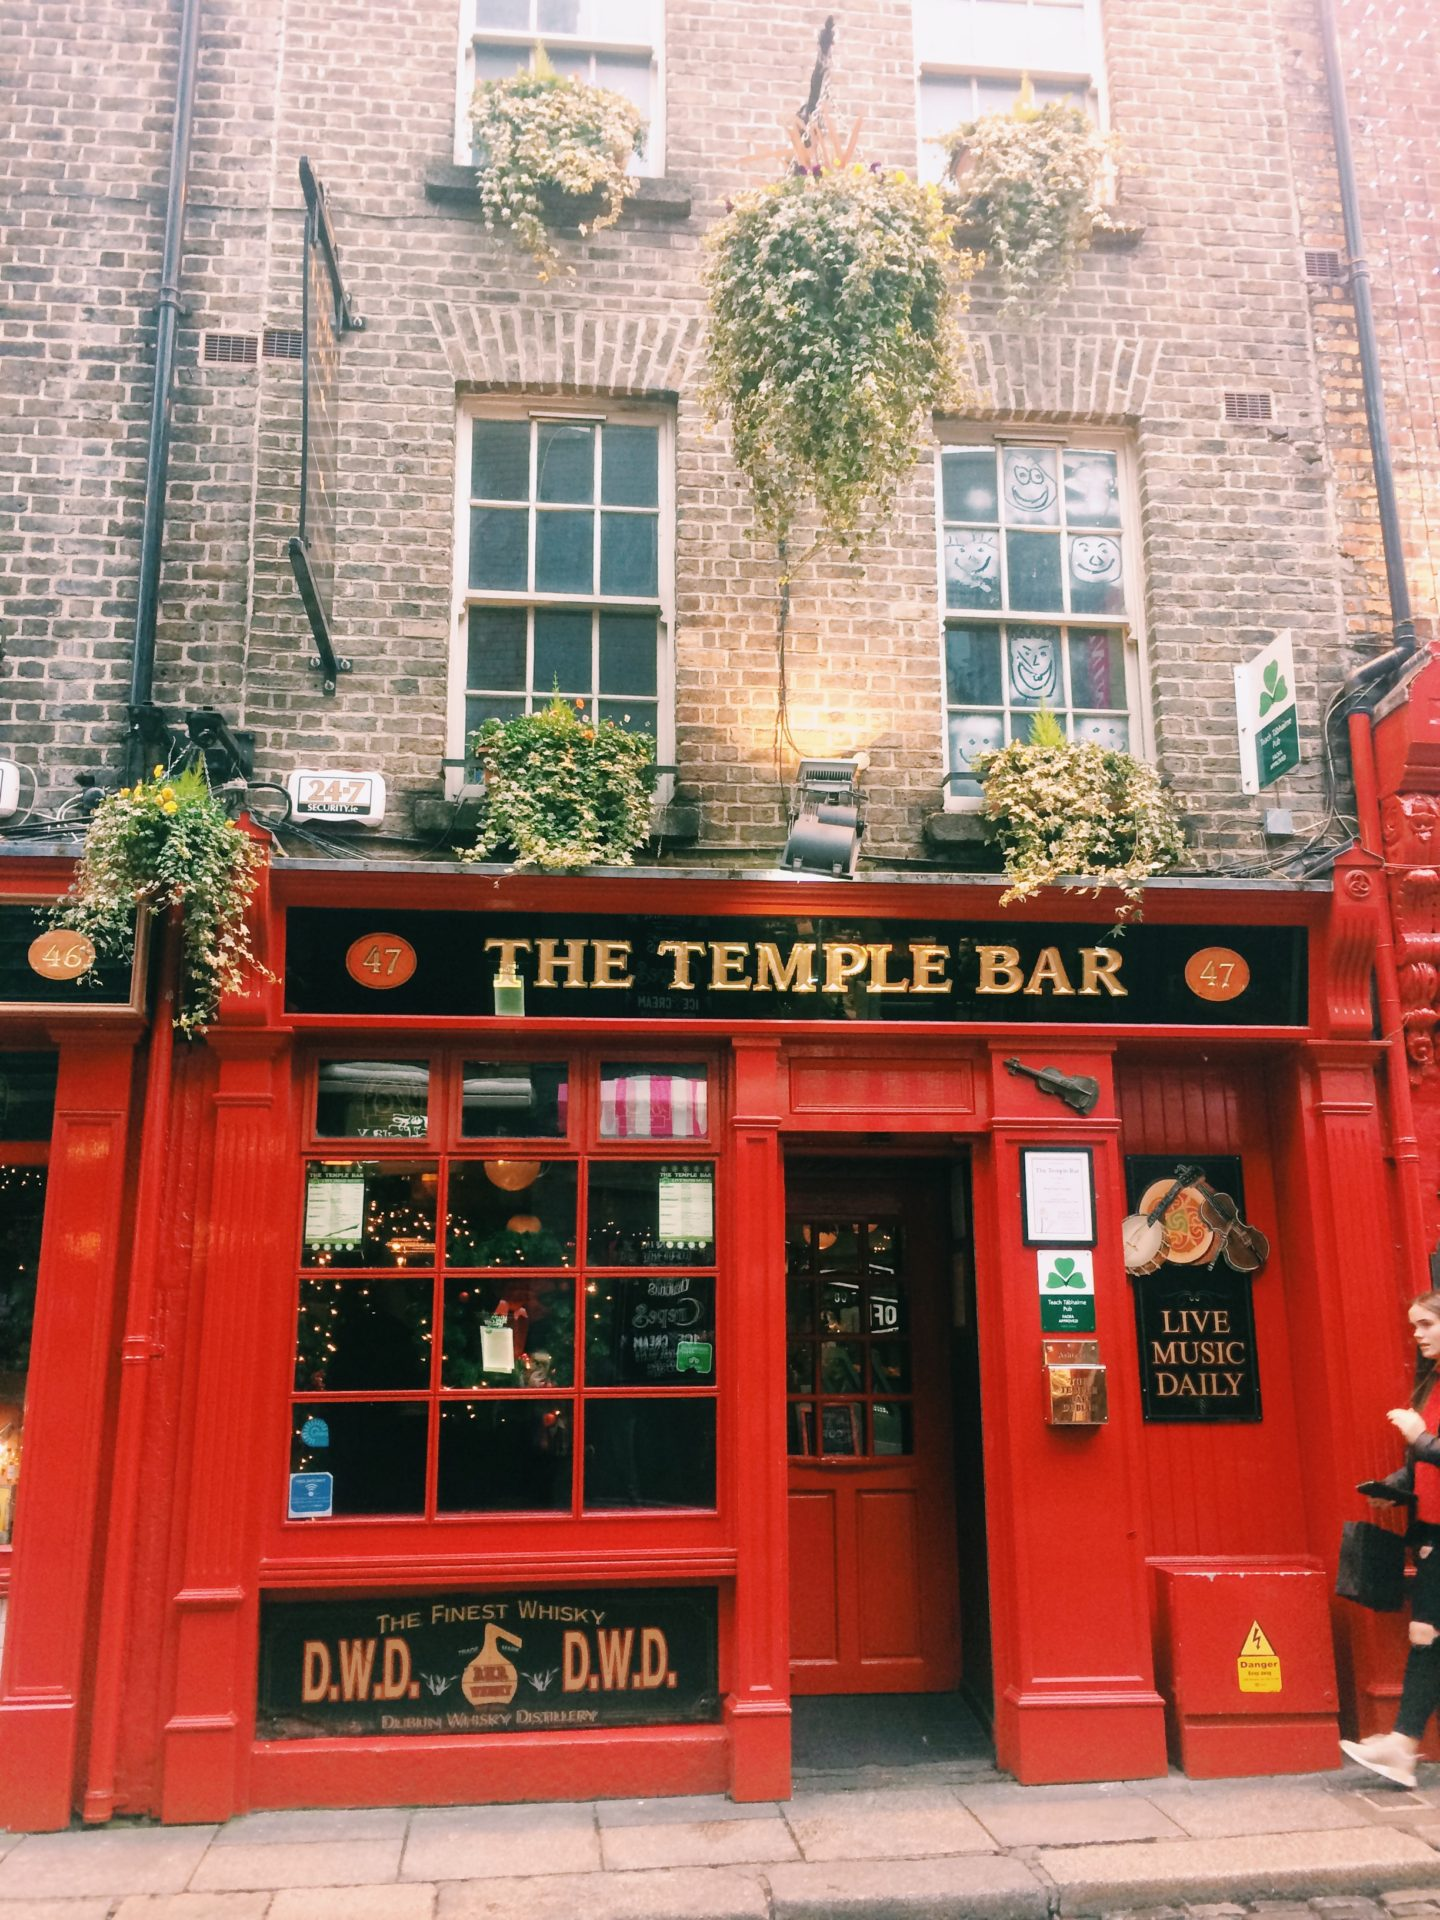 Outside Temple bar